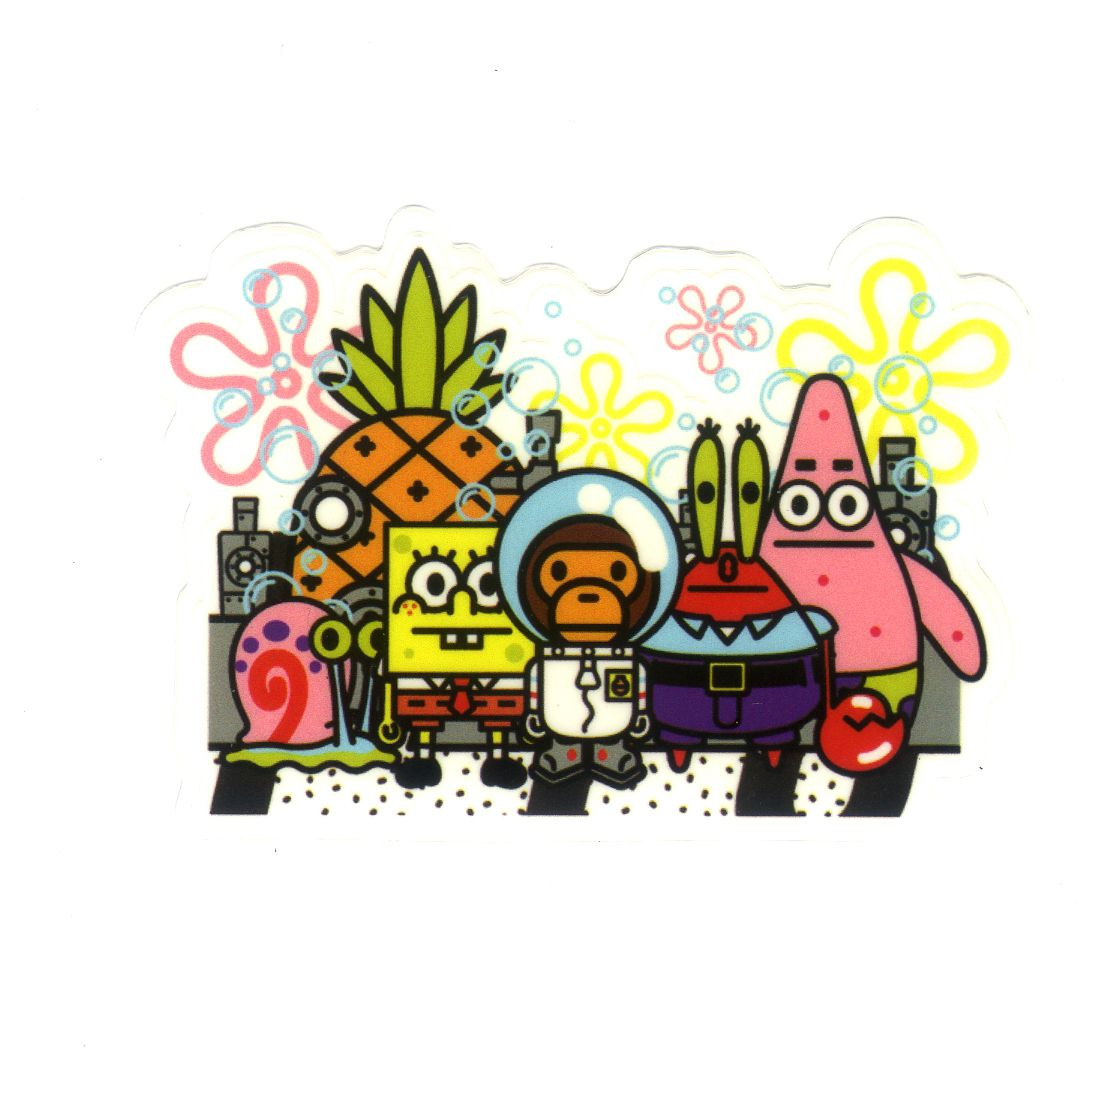 1229 Baby Milo X Spongebob And Friends 5 5 X 8 Cm Decal